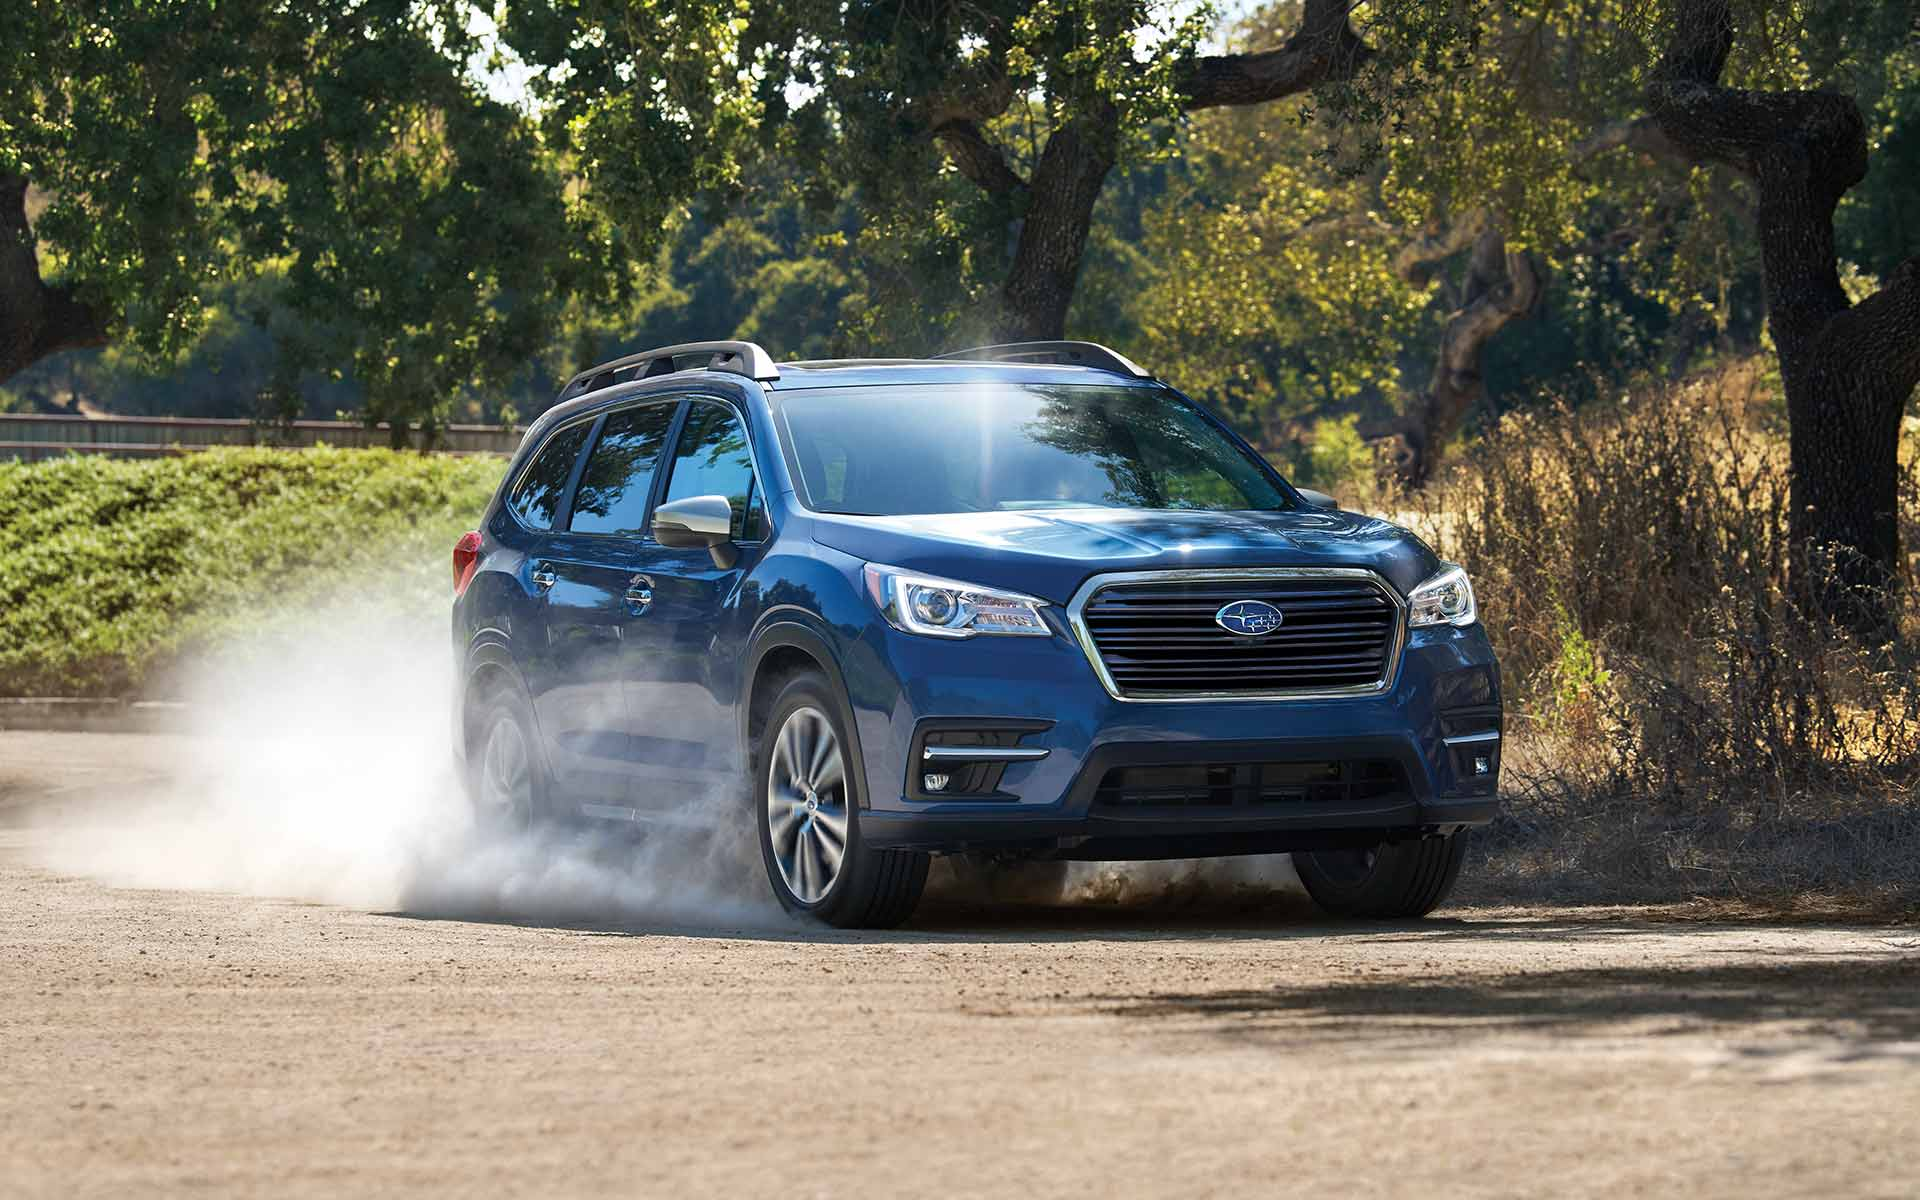 73 Gallery of 2019 Subaru Ascent Vs Honda Pilot Vs Toyota Highlander Specs and Review by 2019 Subaru Ascent Vs Honda Pilot Vs Toyota Highlander